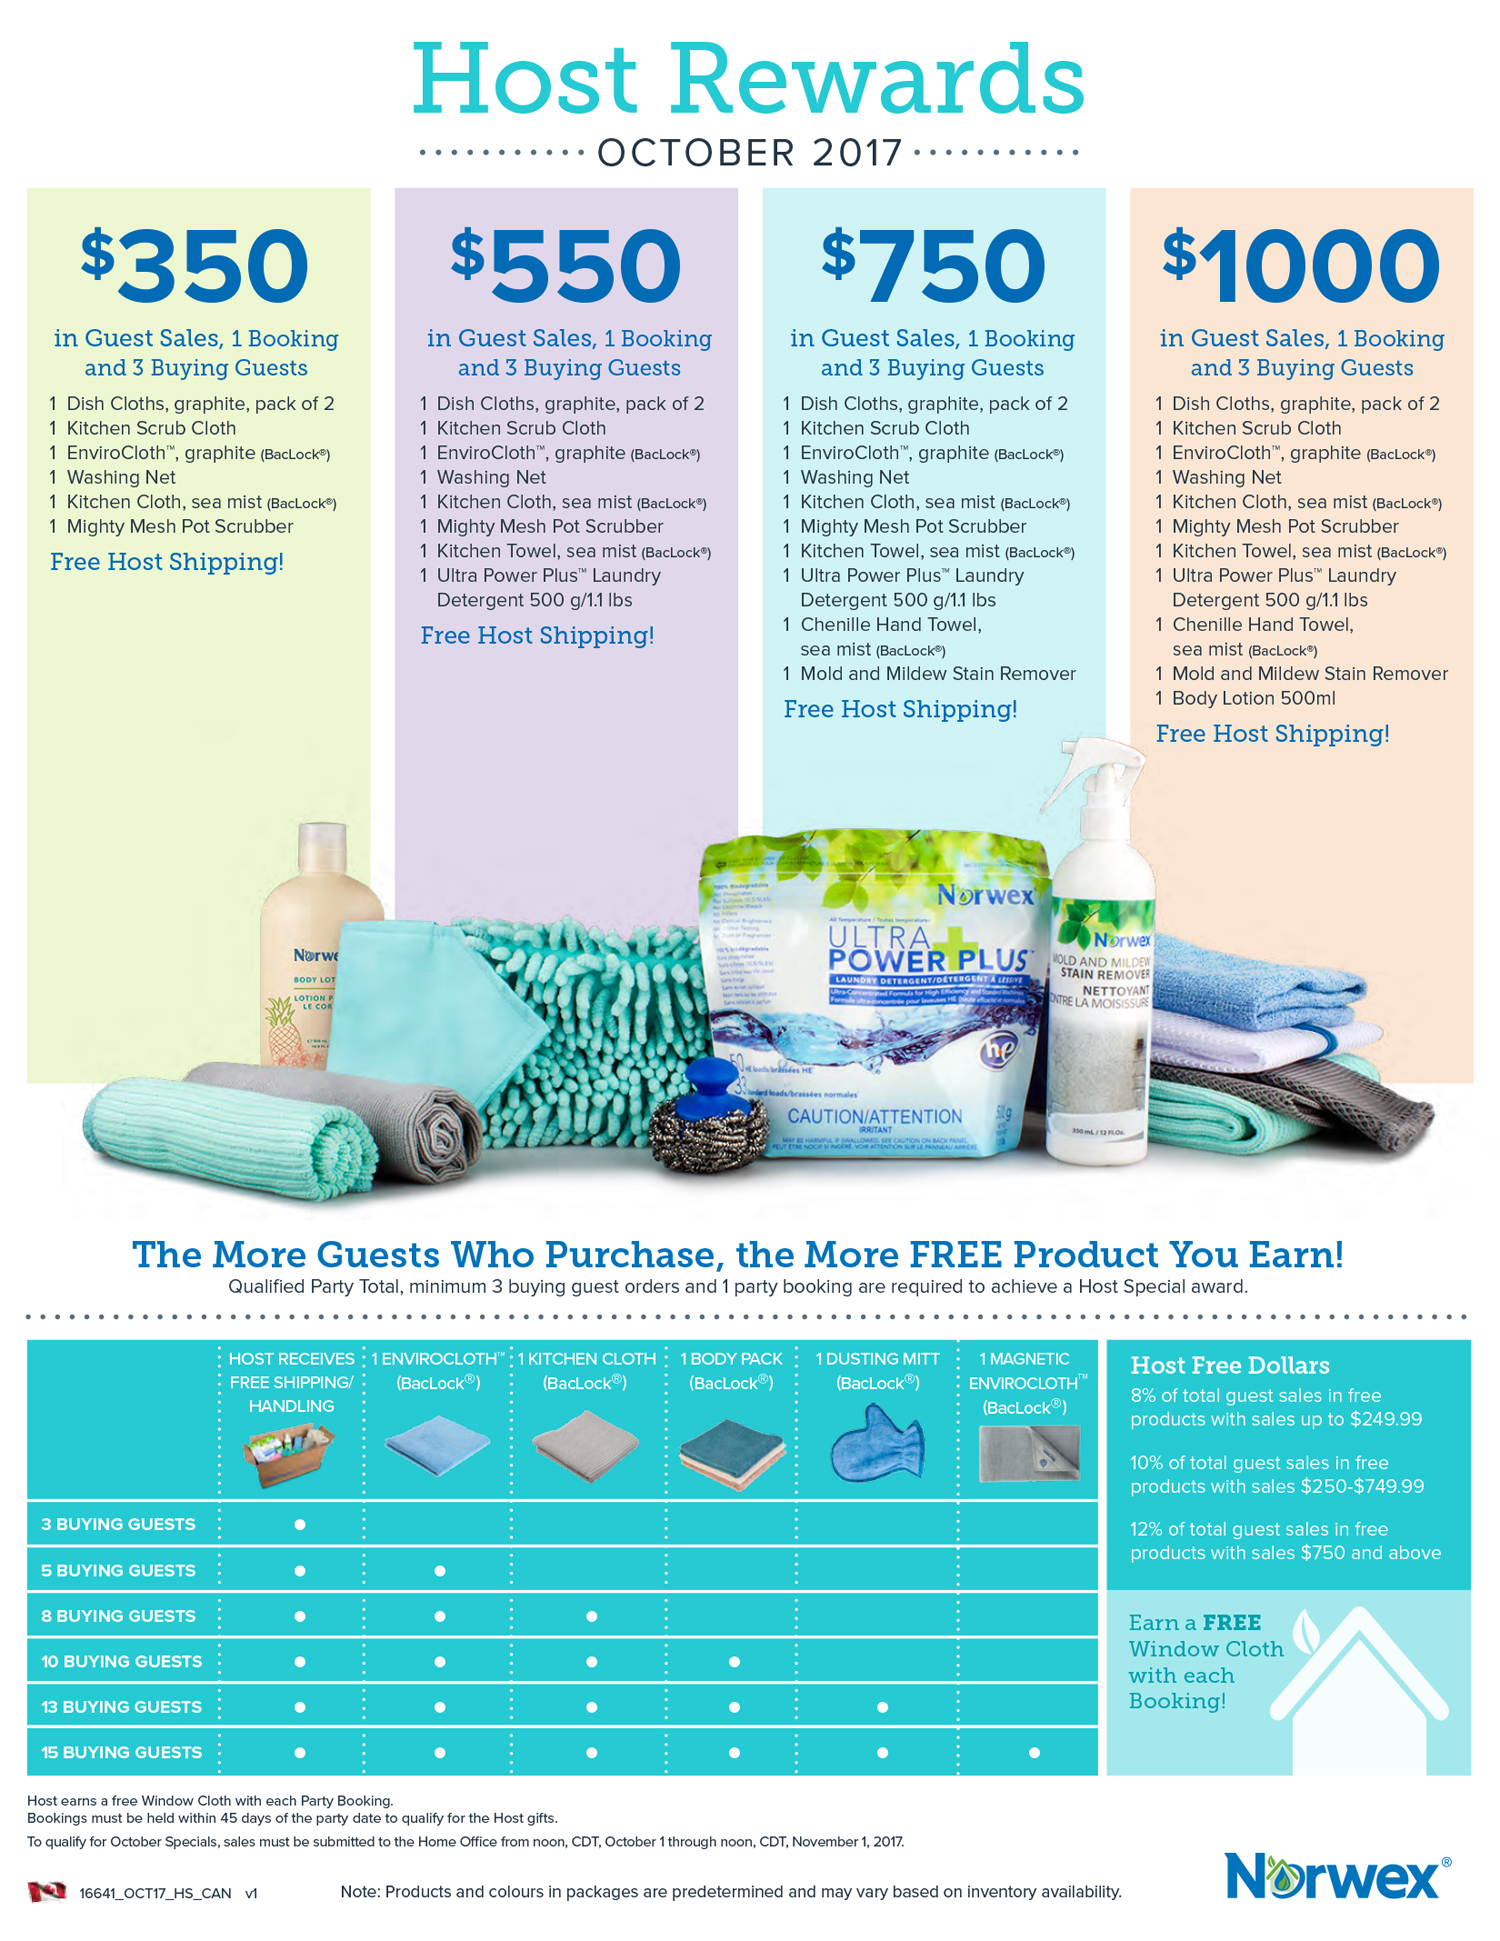 Norwex October Host Rewards